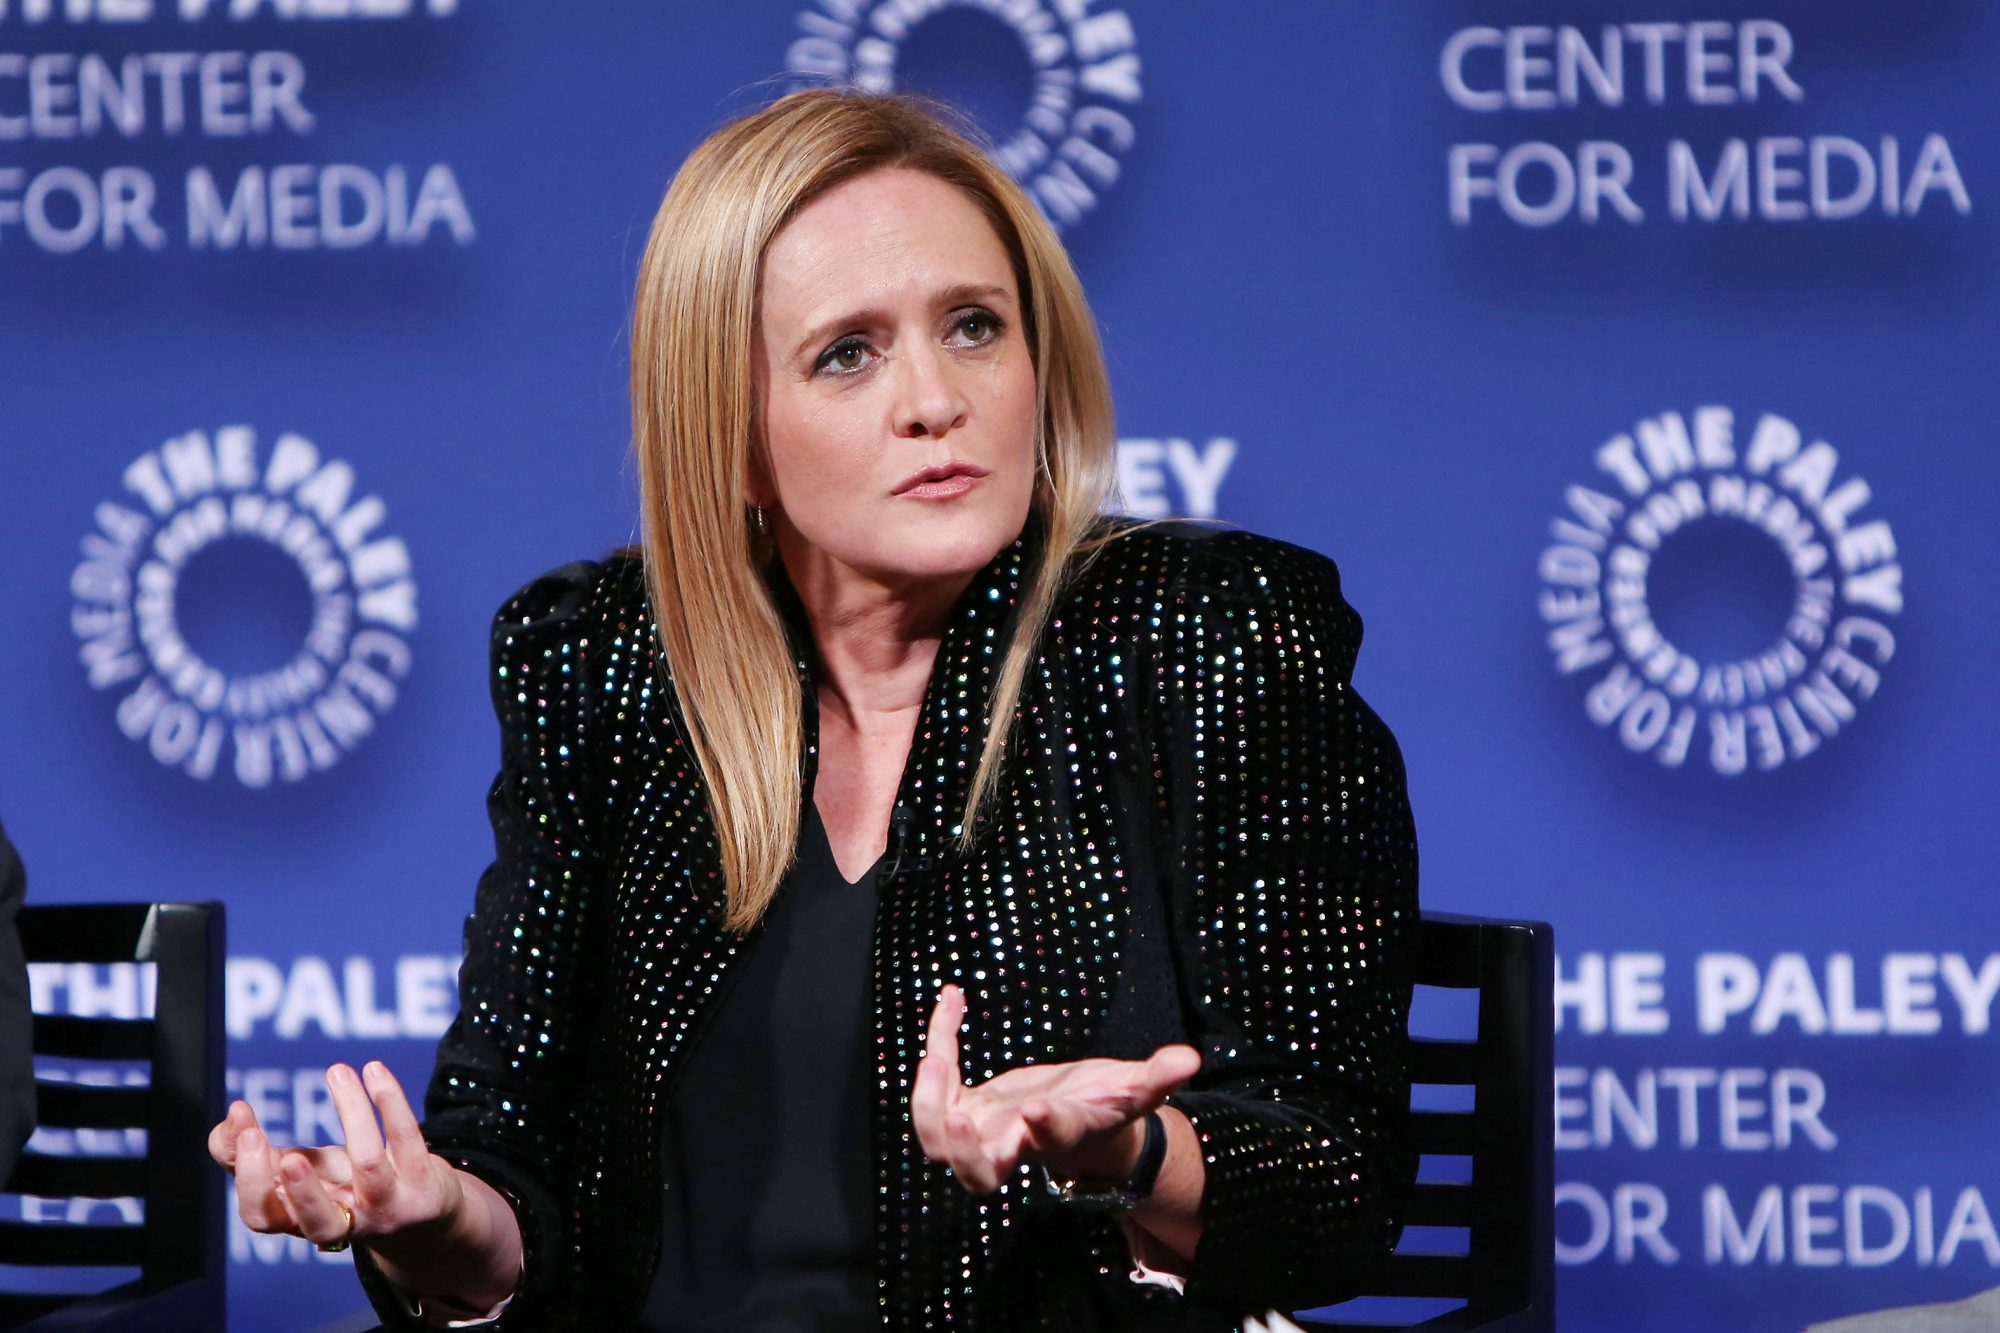 Paleyfest NY: Full Frontal with Samantha Bee, New York, USA - 12 Oct 2017